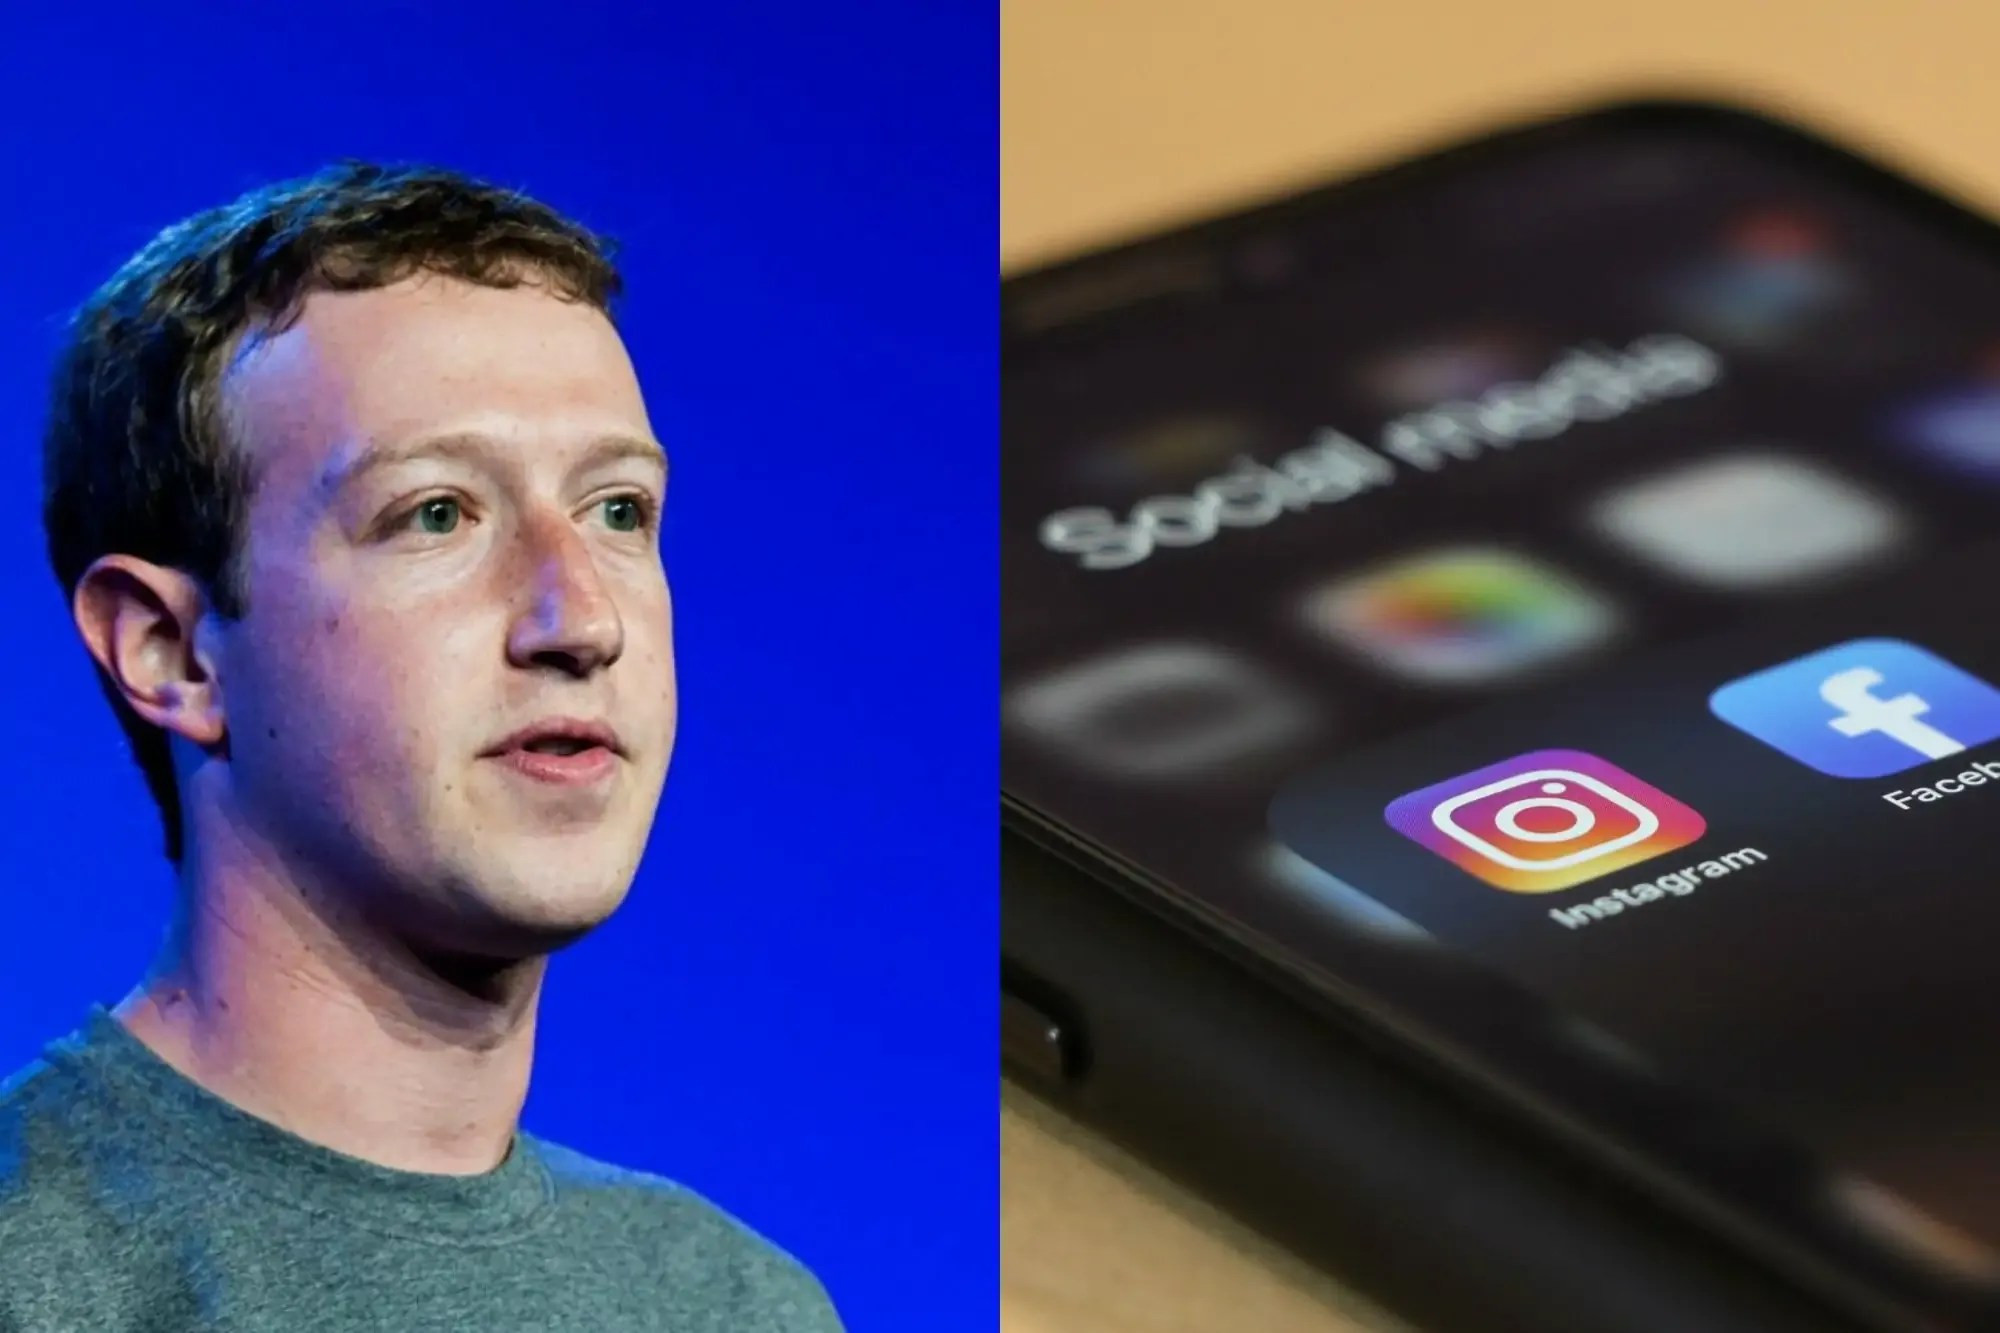 Zuckerberg Loses Almost £7b as Facebook, WhatsApp, Instagram Went Off for Hours